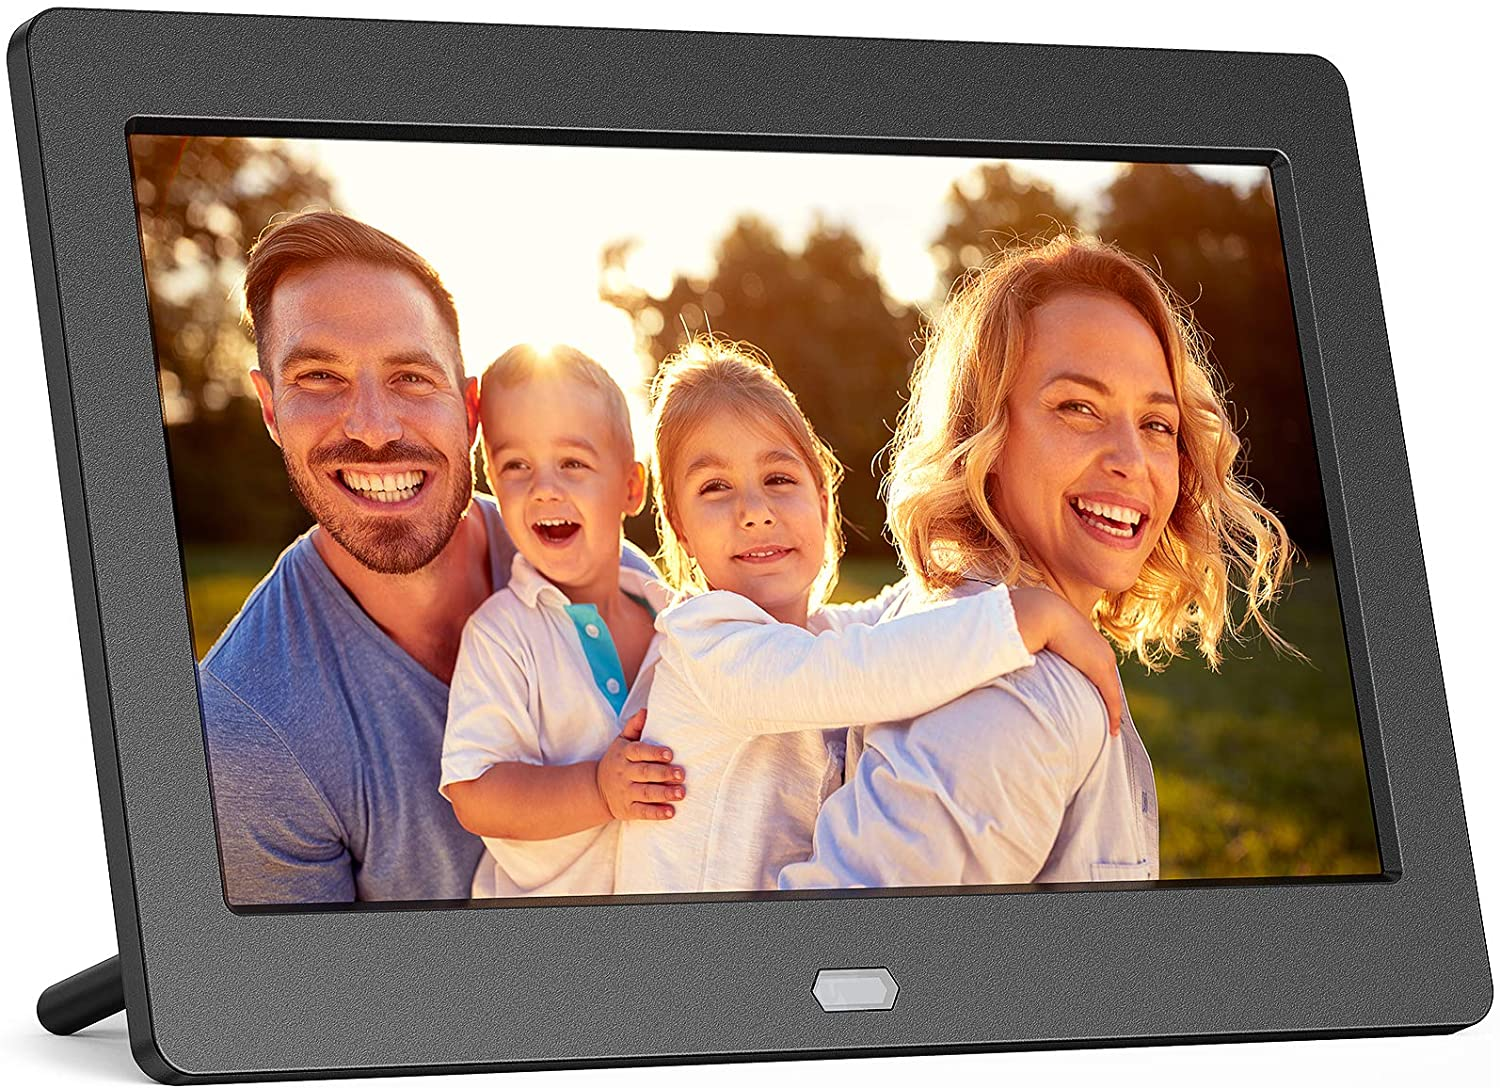 Digital Photo Frame with IPS Screen - 7-inch Digital Picture Frame with 1080P Video, Music, Photo, Auto Rotate, Slide Show, Remote Control, Calendar, Time,1280x800 16:9, Support USB and SD Card